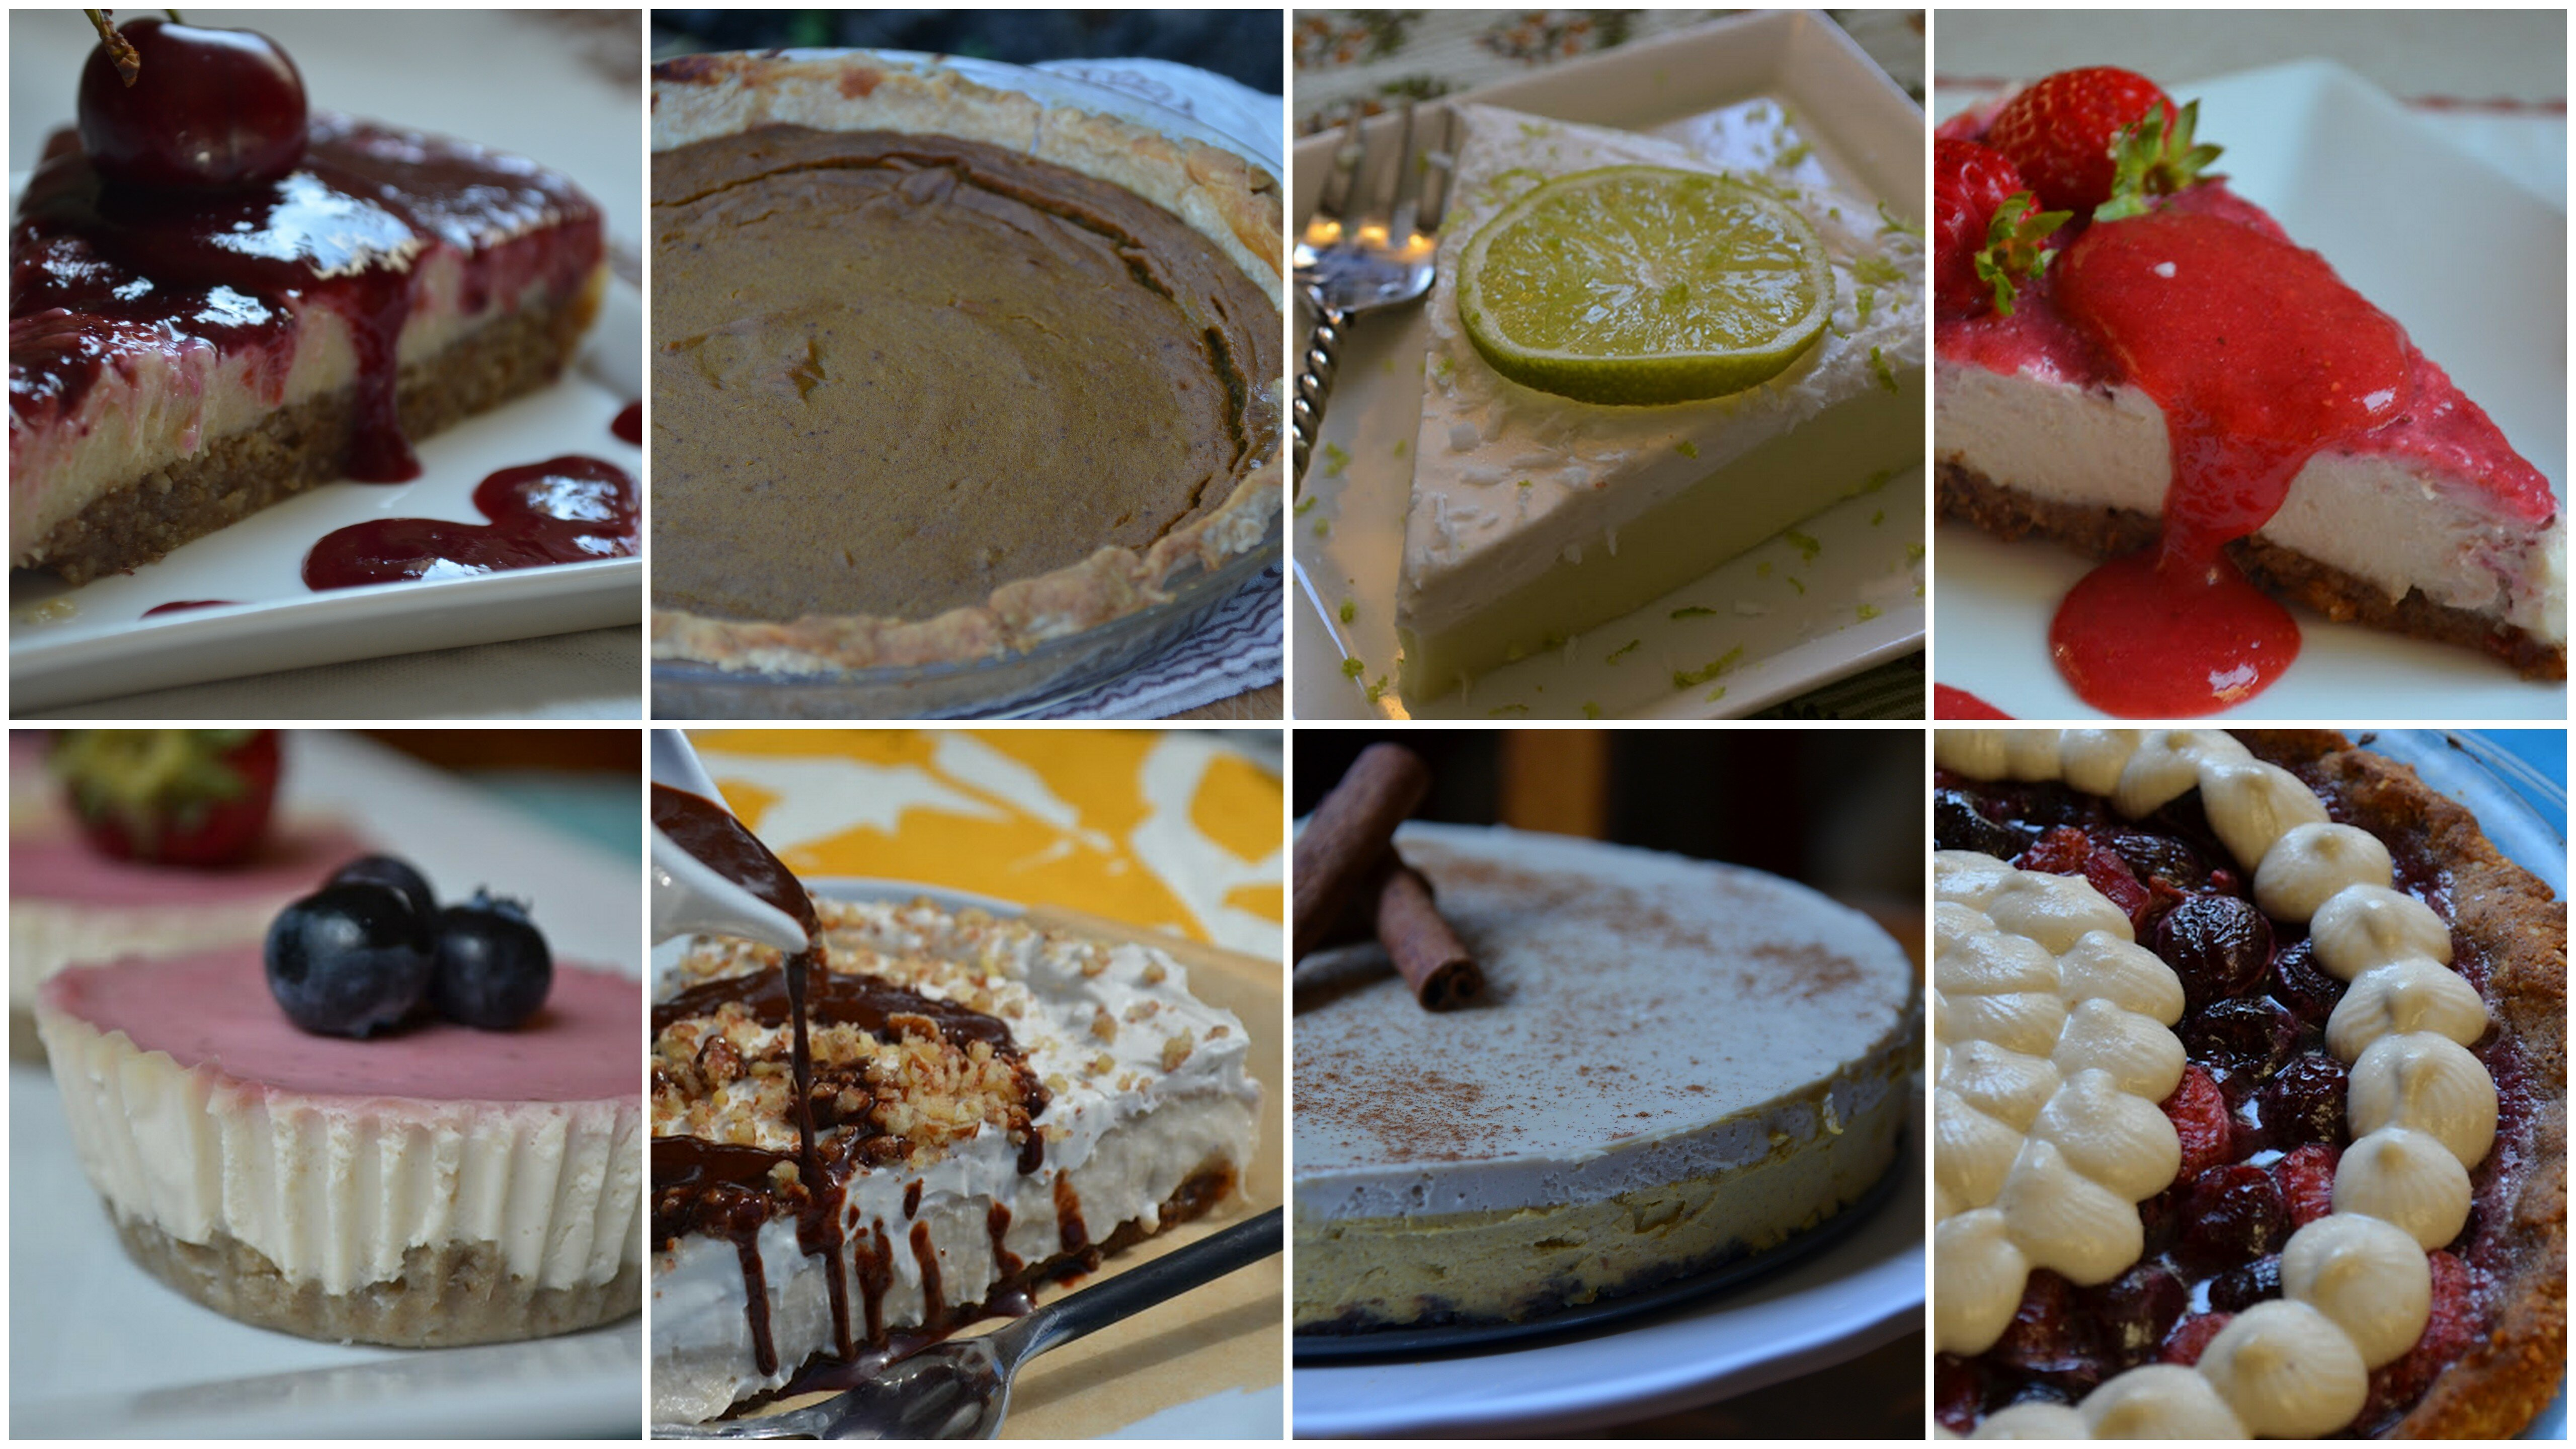 cakes and pies1